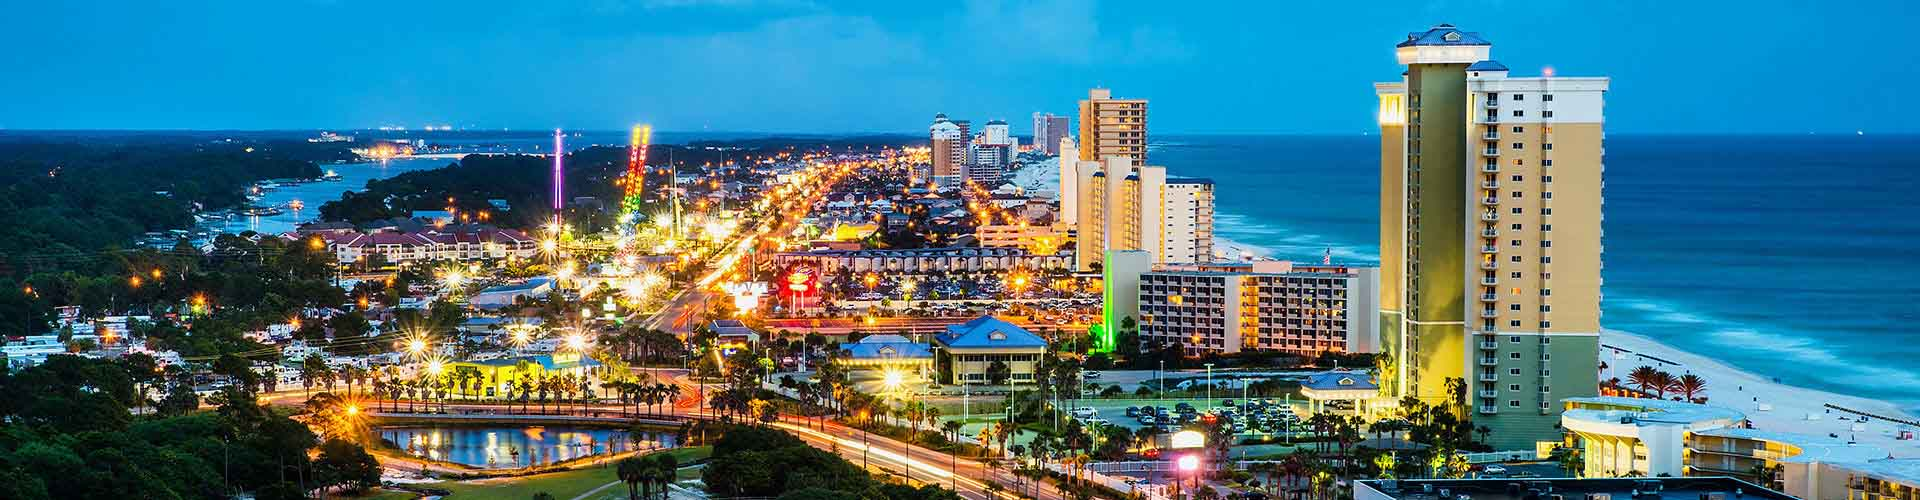 Oceanfront Hotels In Panama City Florida